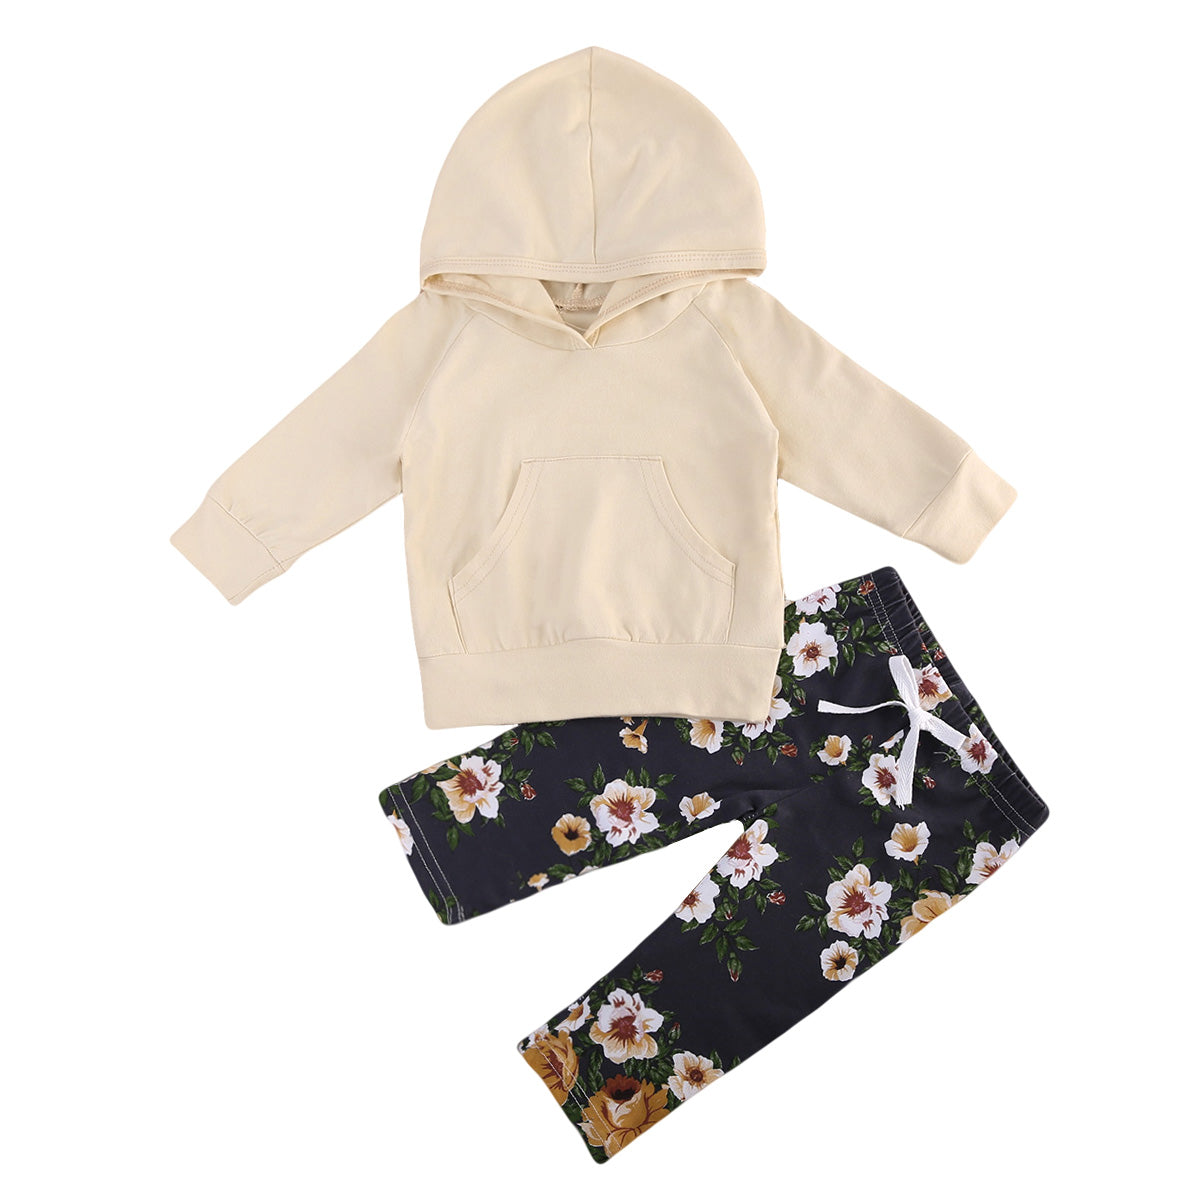 Baby Clothing 0-18M Toddler Baby Kids Girls Clothes Floral Hooded Tops+ Floral Long Pants Outfits Set-eosegal